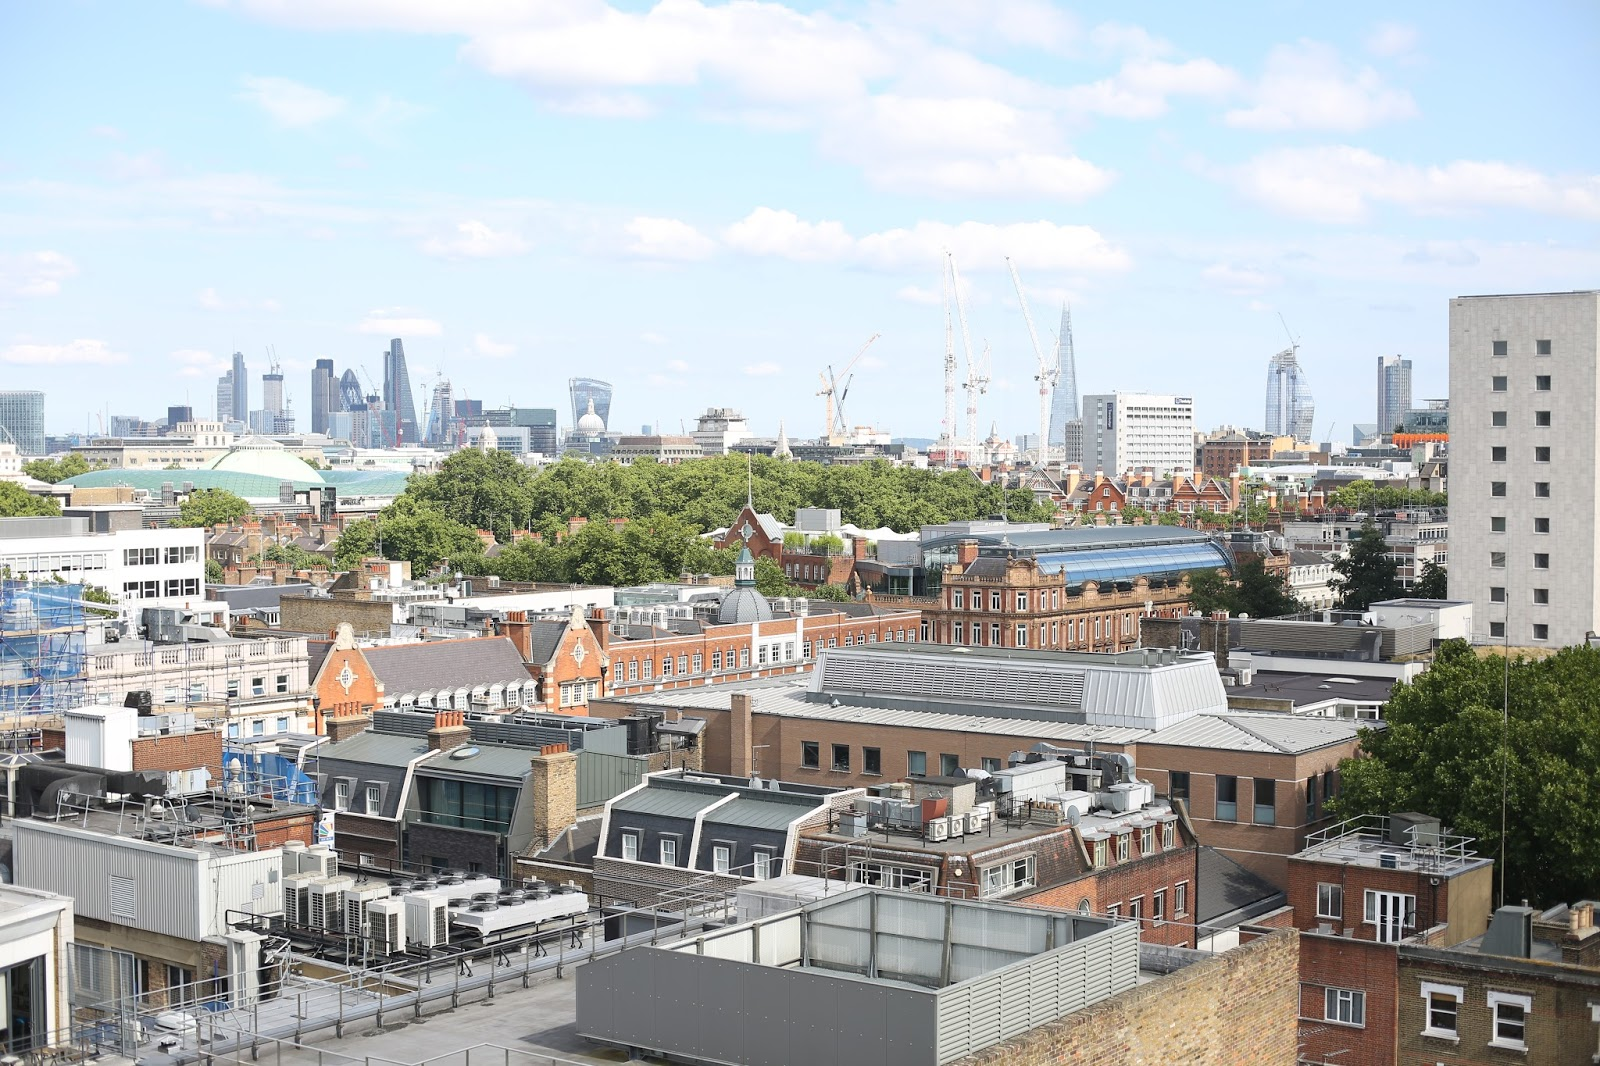 London panoramic views